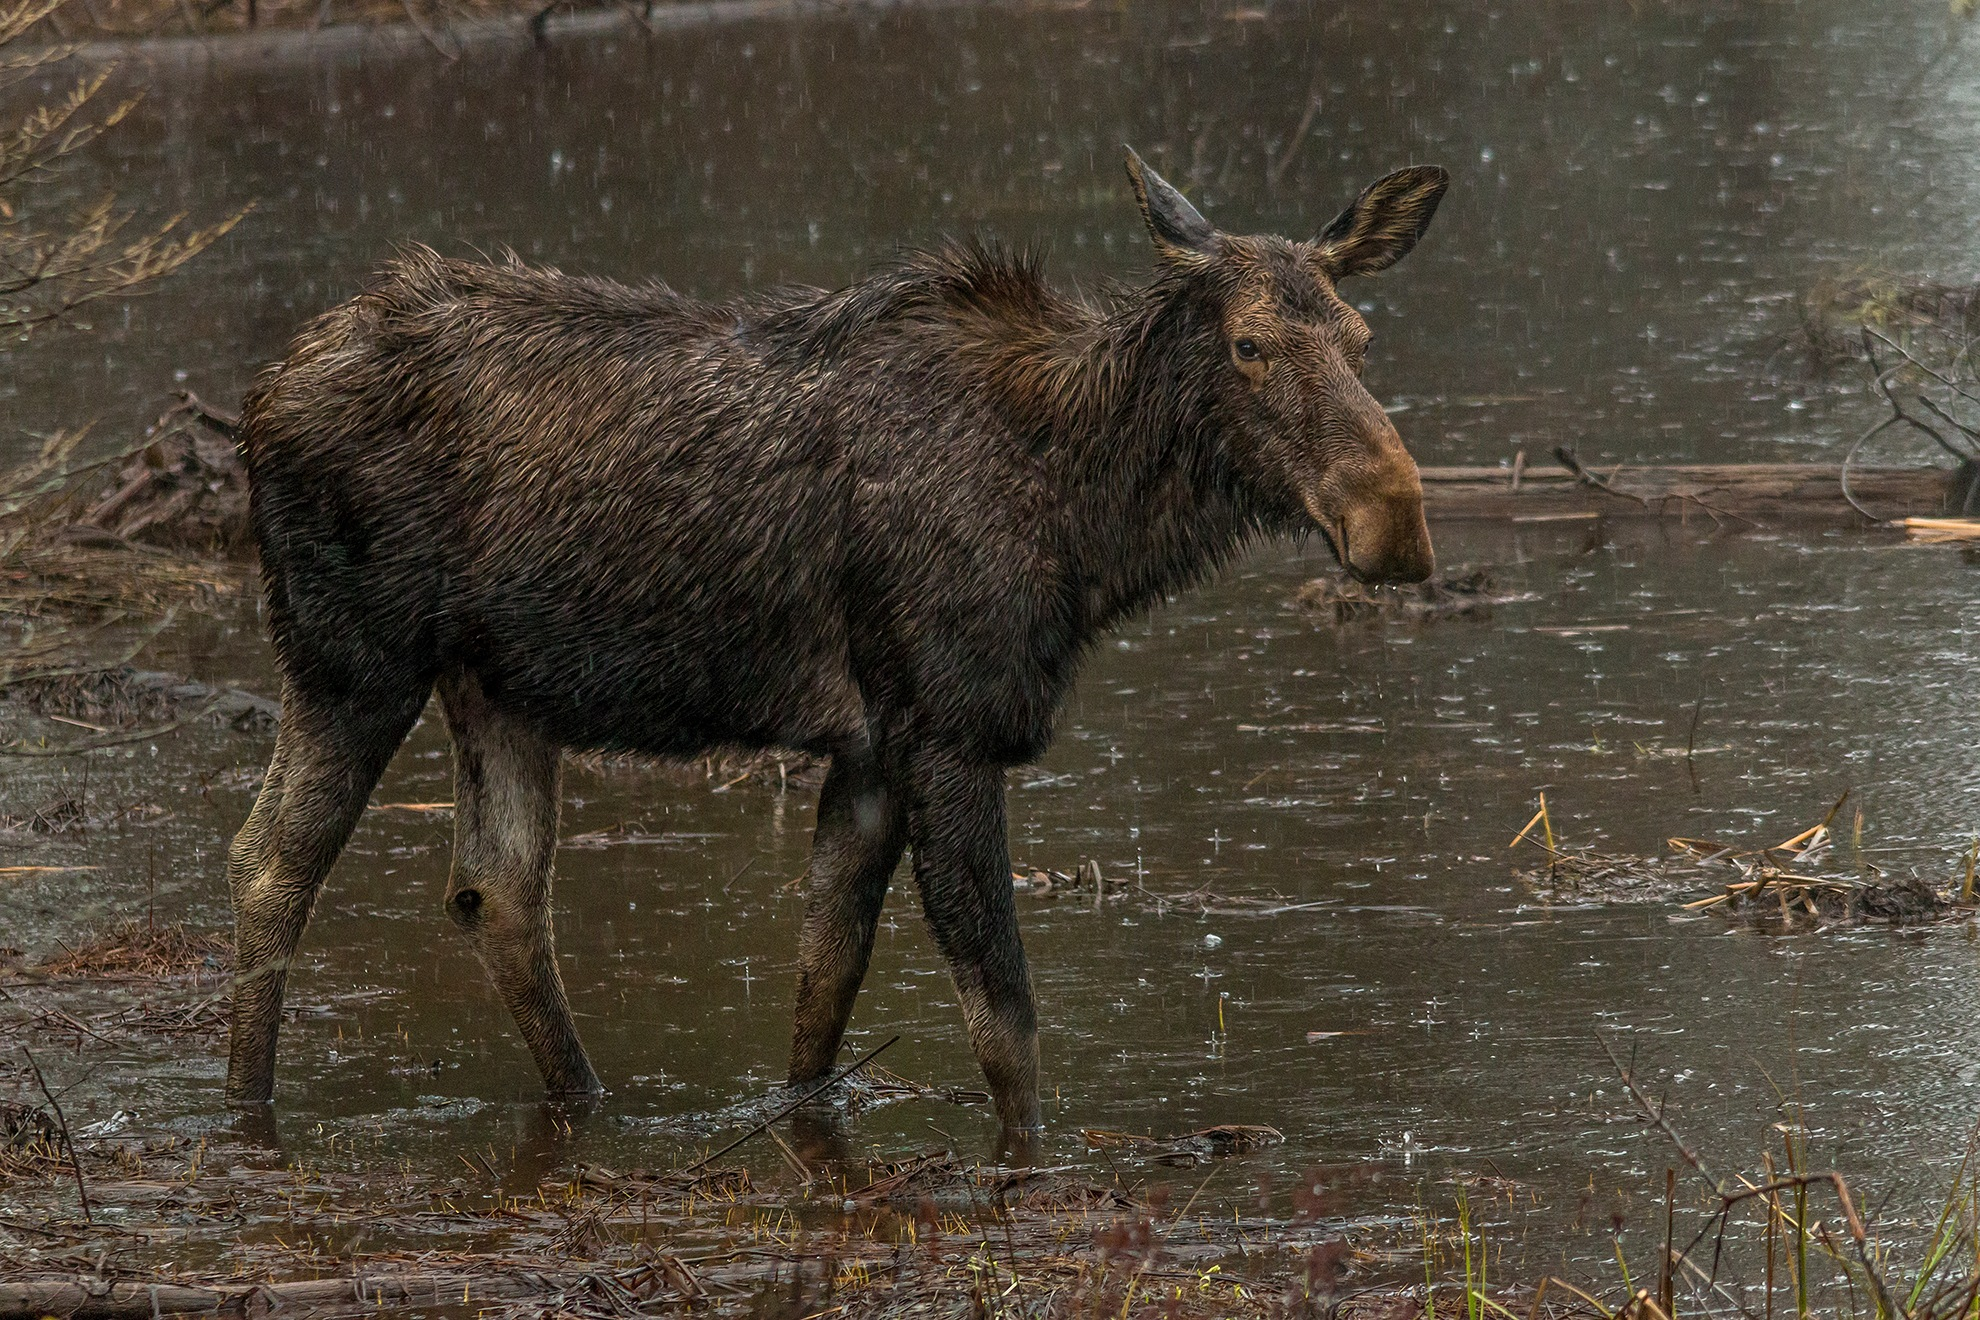 Rainy Day Moose by Steve Dunsford